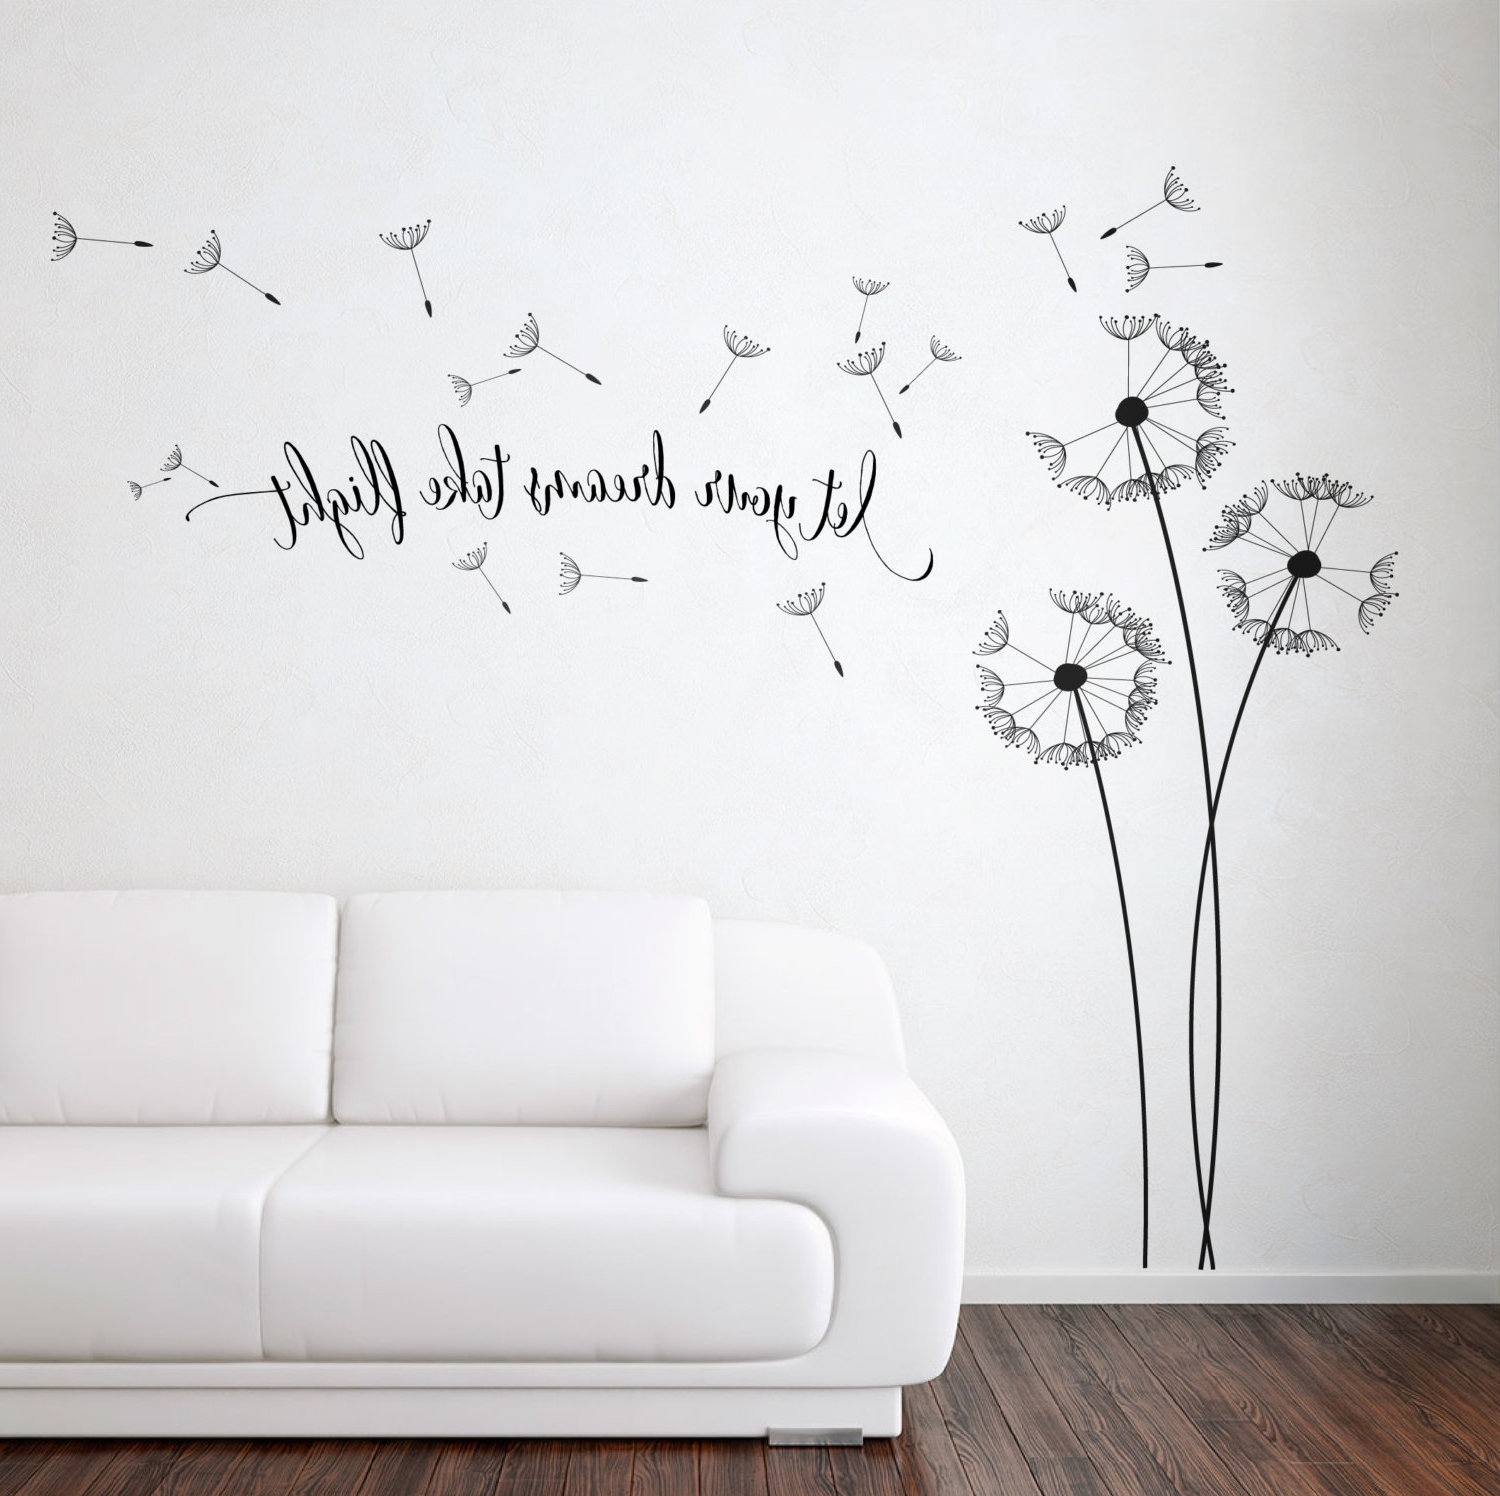 Latest Dandelion Wall Art Pertaining To Dandelion Blowing With Quote Wall Sticker, Floral Sticker, Flower (Gallery 1 of 20)